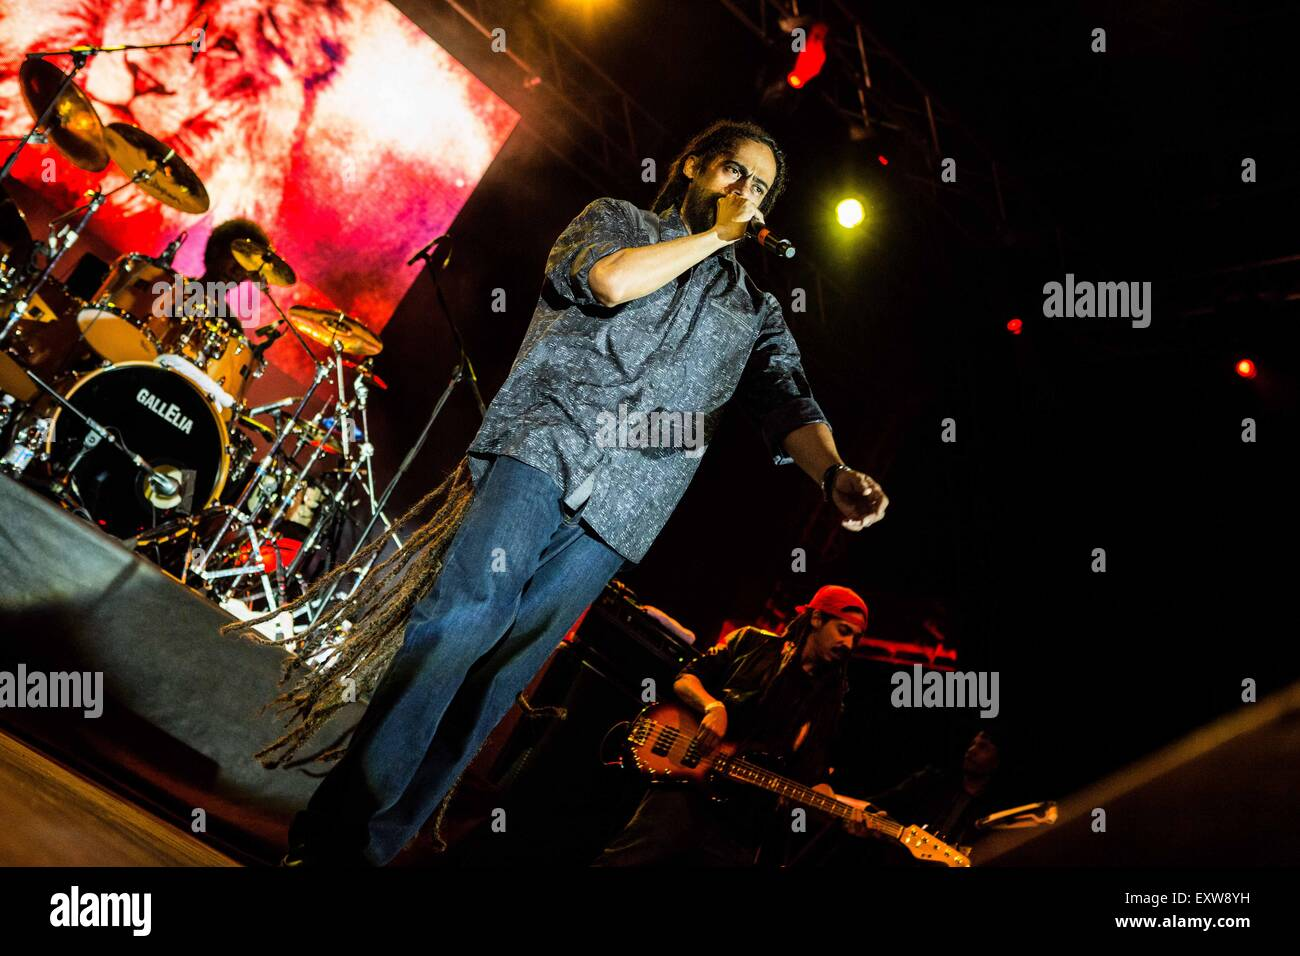 Milan, Italy 30st Juin 2015. Damian Marley performs live at Carroponte © Roberto Finizio/Alamy Live News - Stock Image